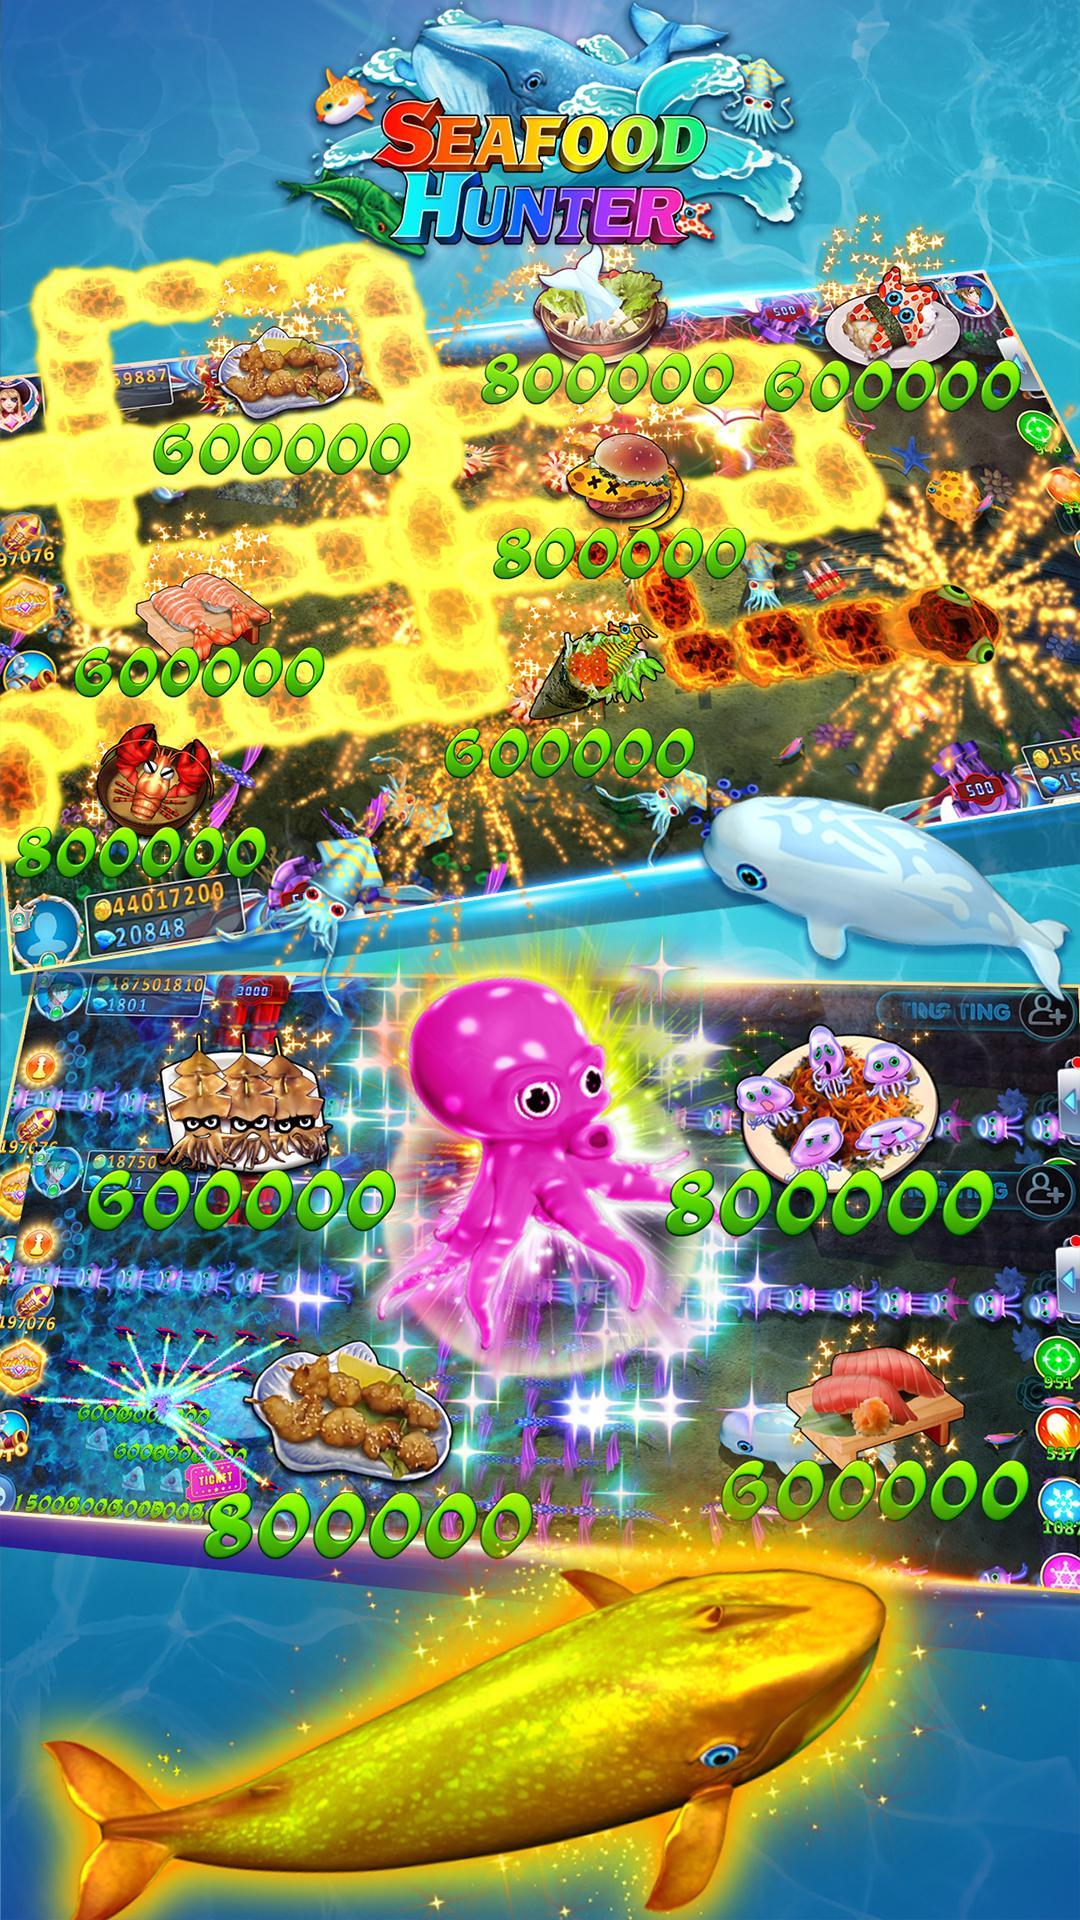 Dragon King Fishing Online-Arcade  Fish Games 5.2.0 Screenshot 20